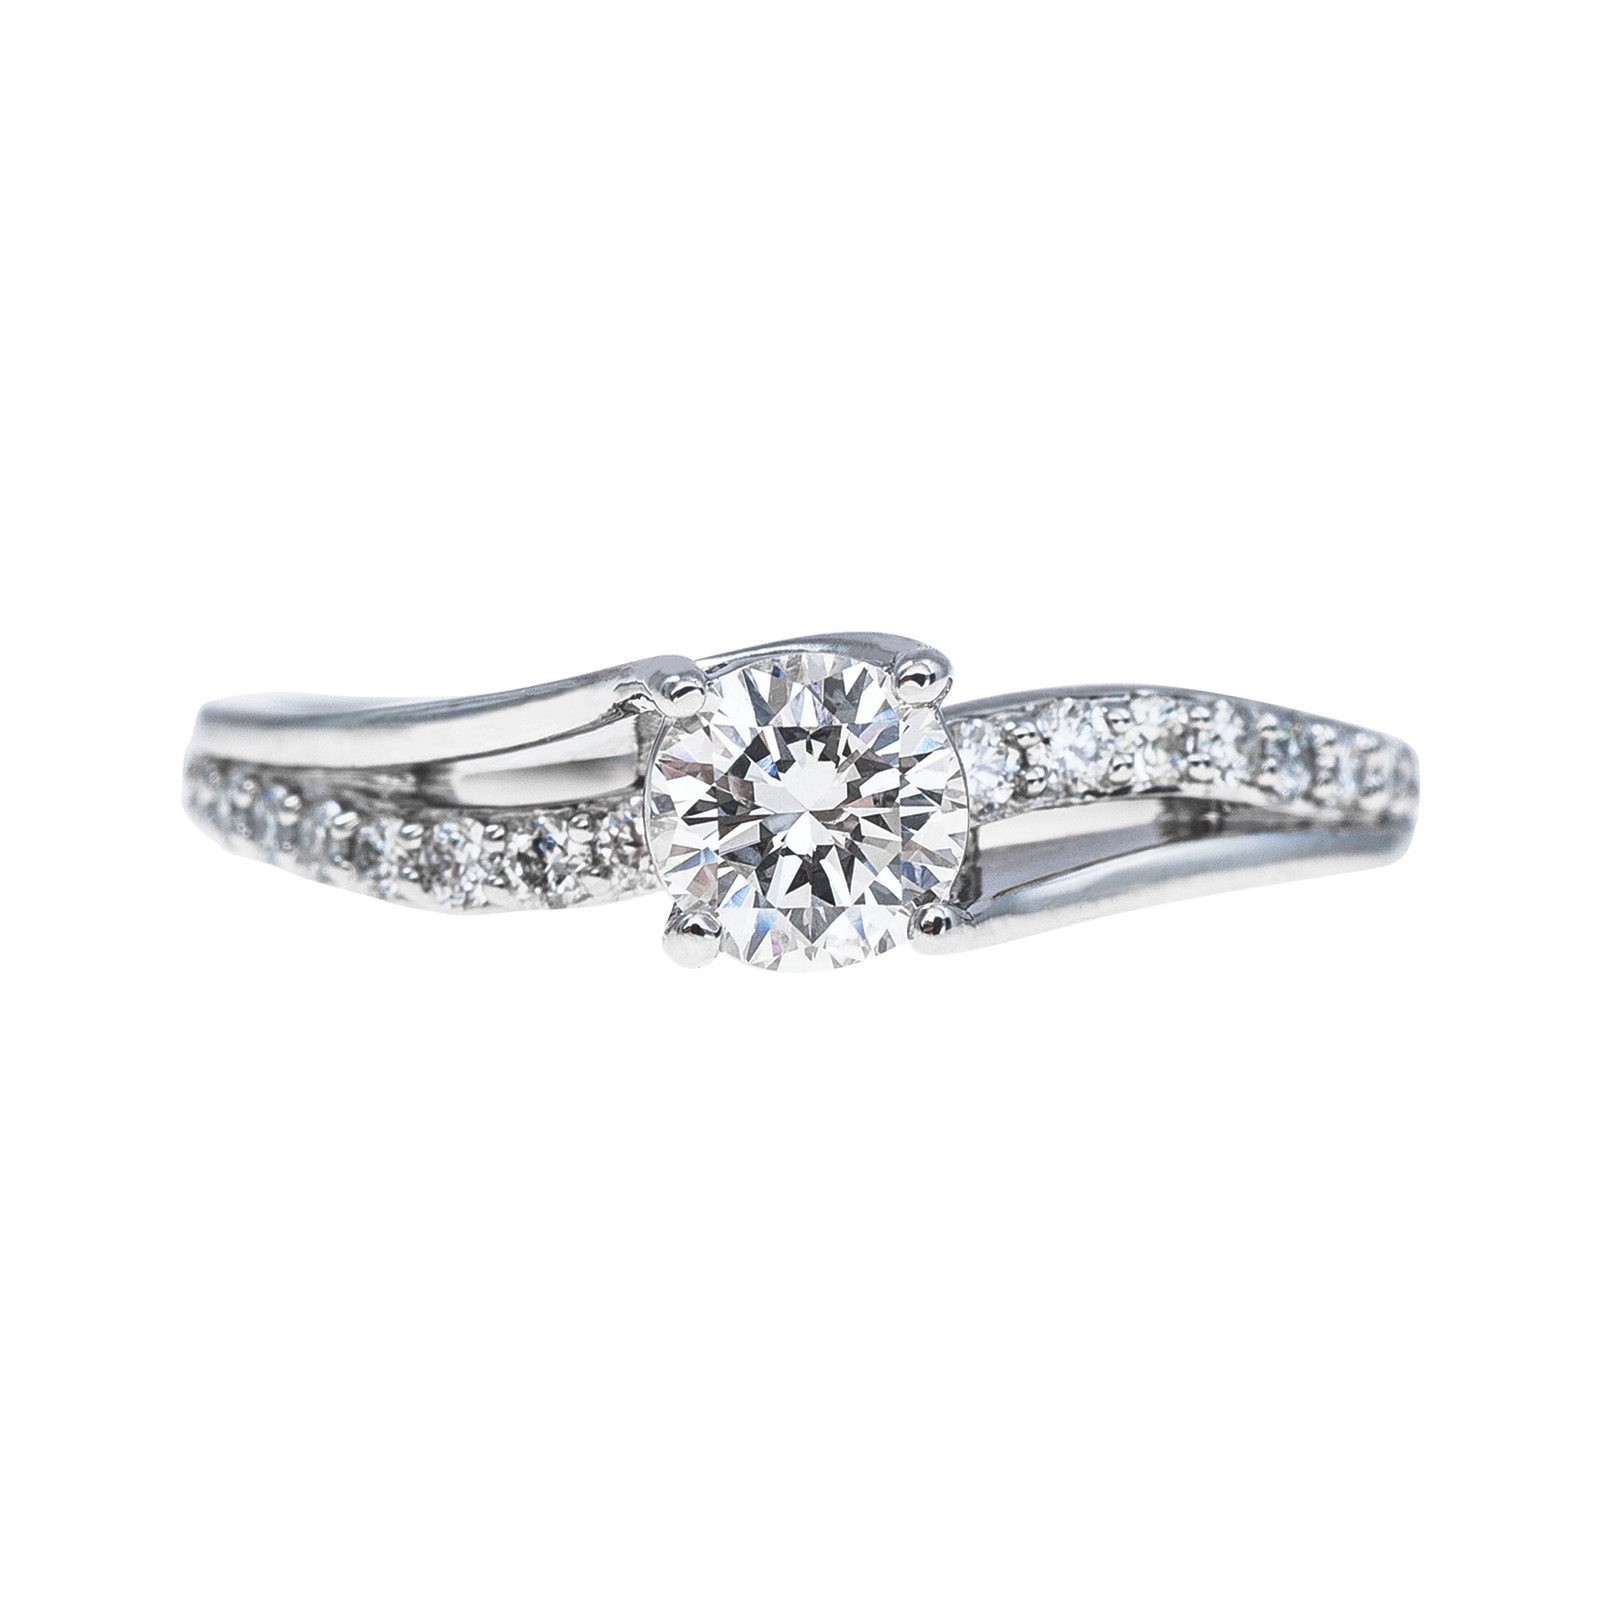 New 0.79 CTW Diamond Engagement Ring